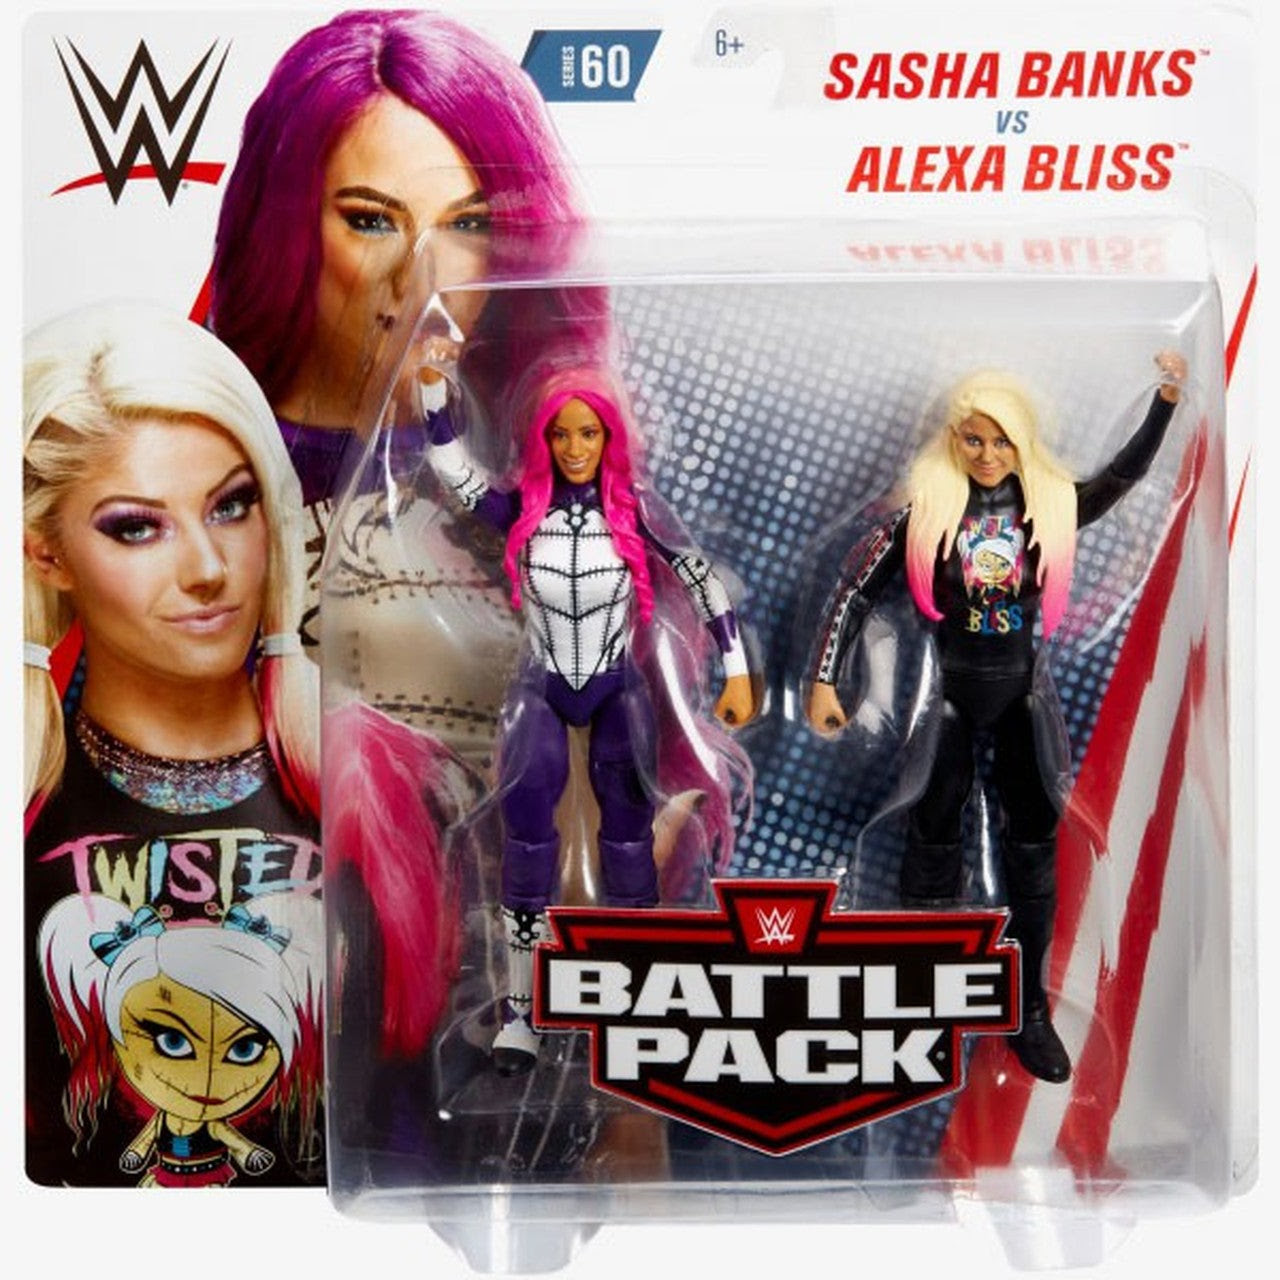 Image of WWE Battle Packs Series 60 - Sasha Banks & Alexa Bliss - AUGUST 2019